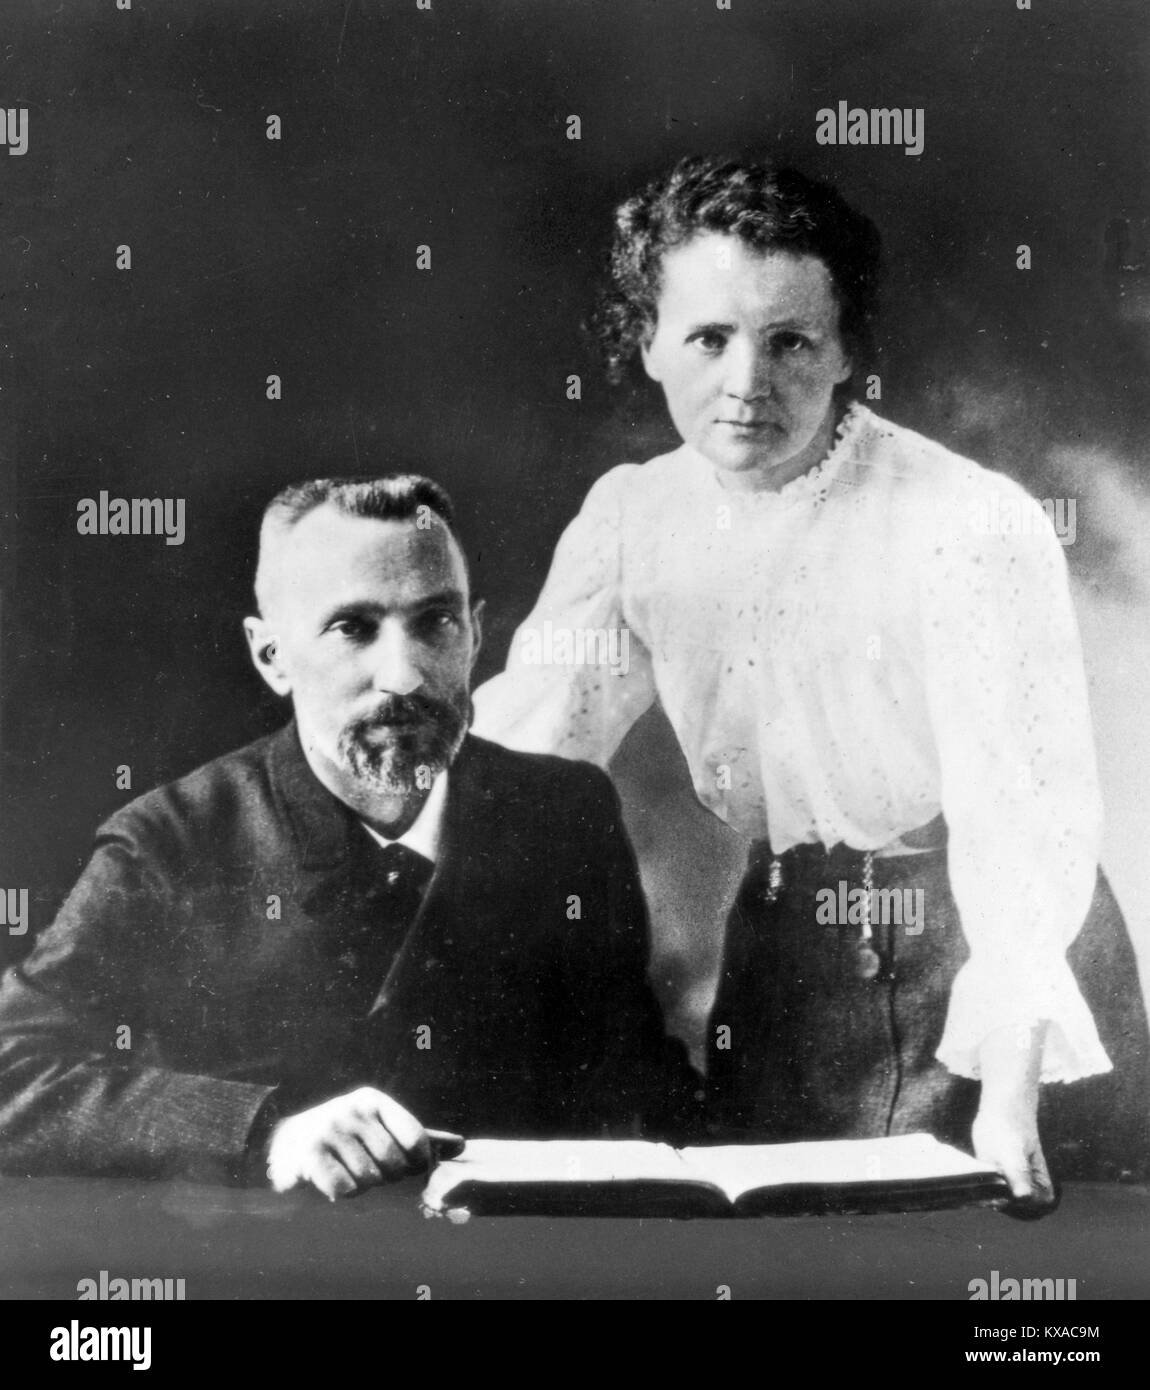 Pierre and Marie Curie, Pierre Curie, French physicist and his wife, Marie Skłodowska-Curie, Marie Curie Stock Photo